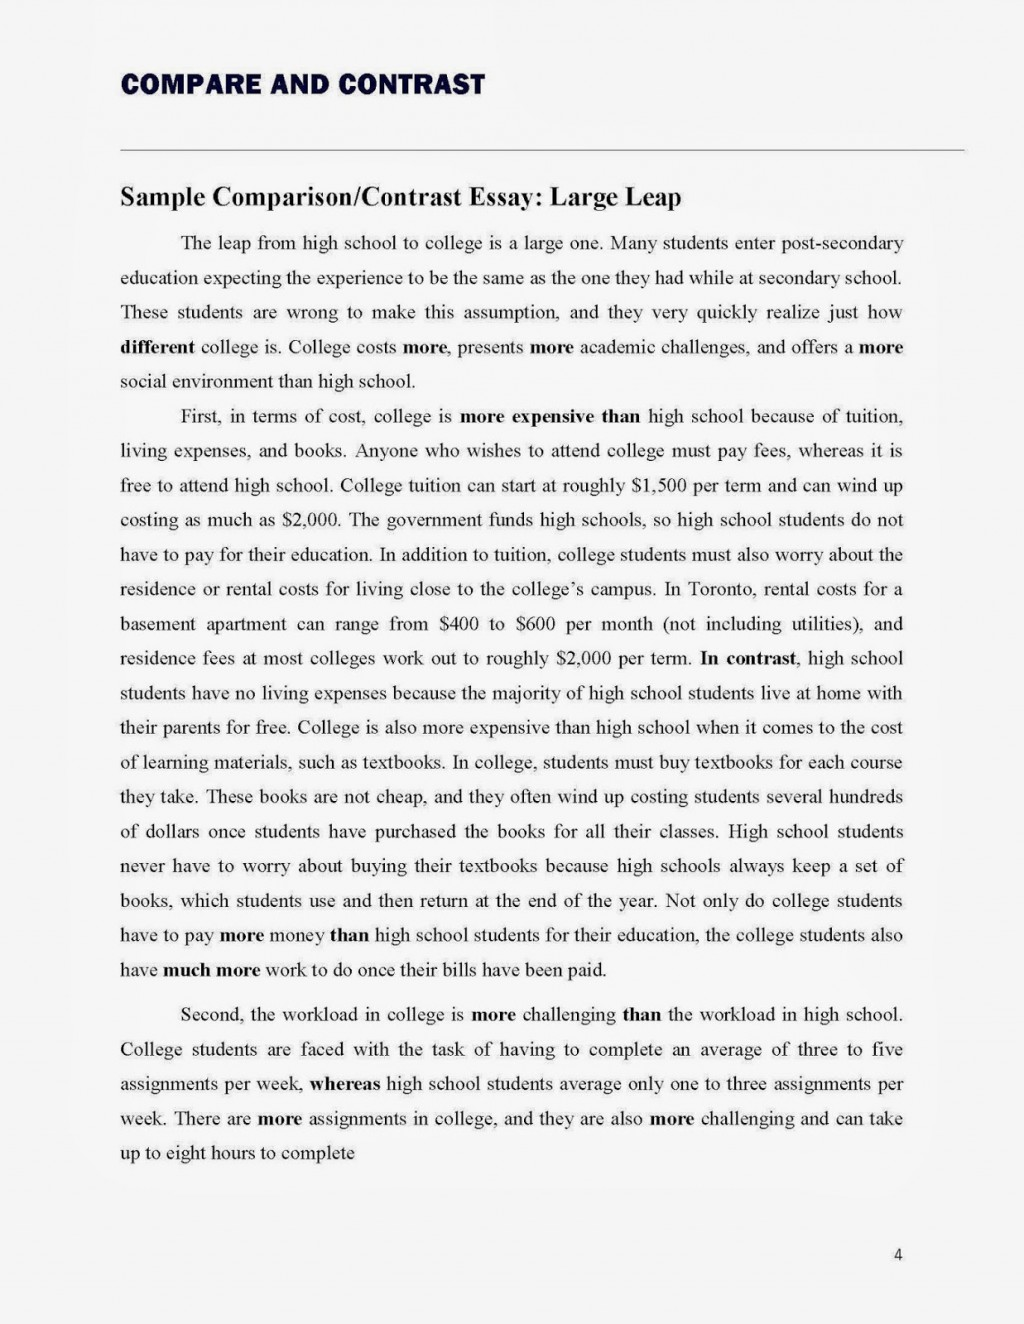 011 Good Compare And Contrast Essay Compare20and20contrast20essay Page 4 Unbelievable The Great Gatsby Tom Examples Middle School Movie Book Large